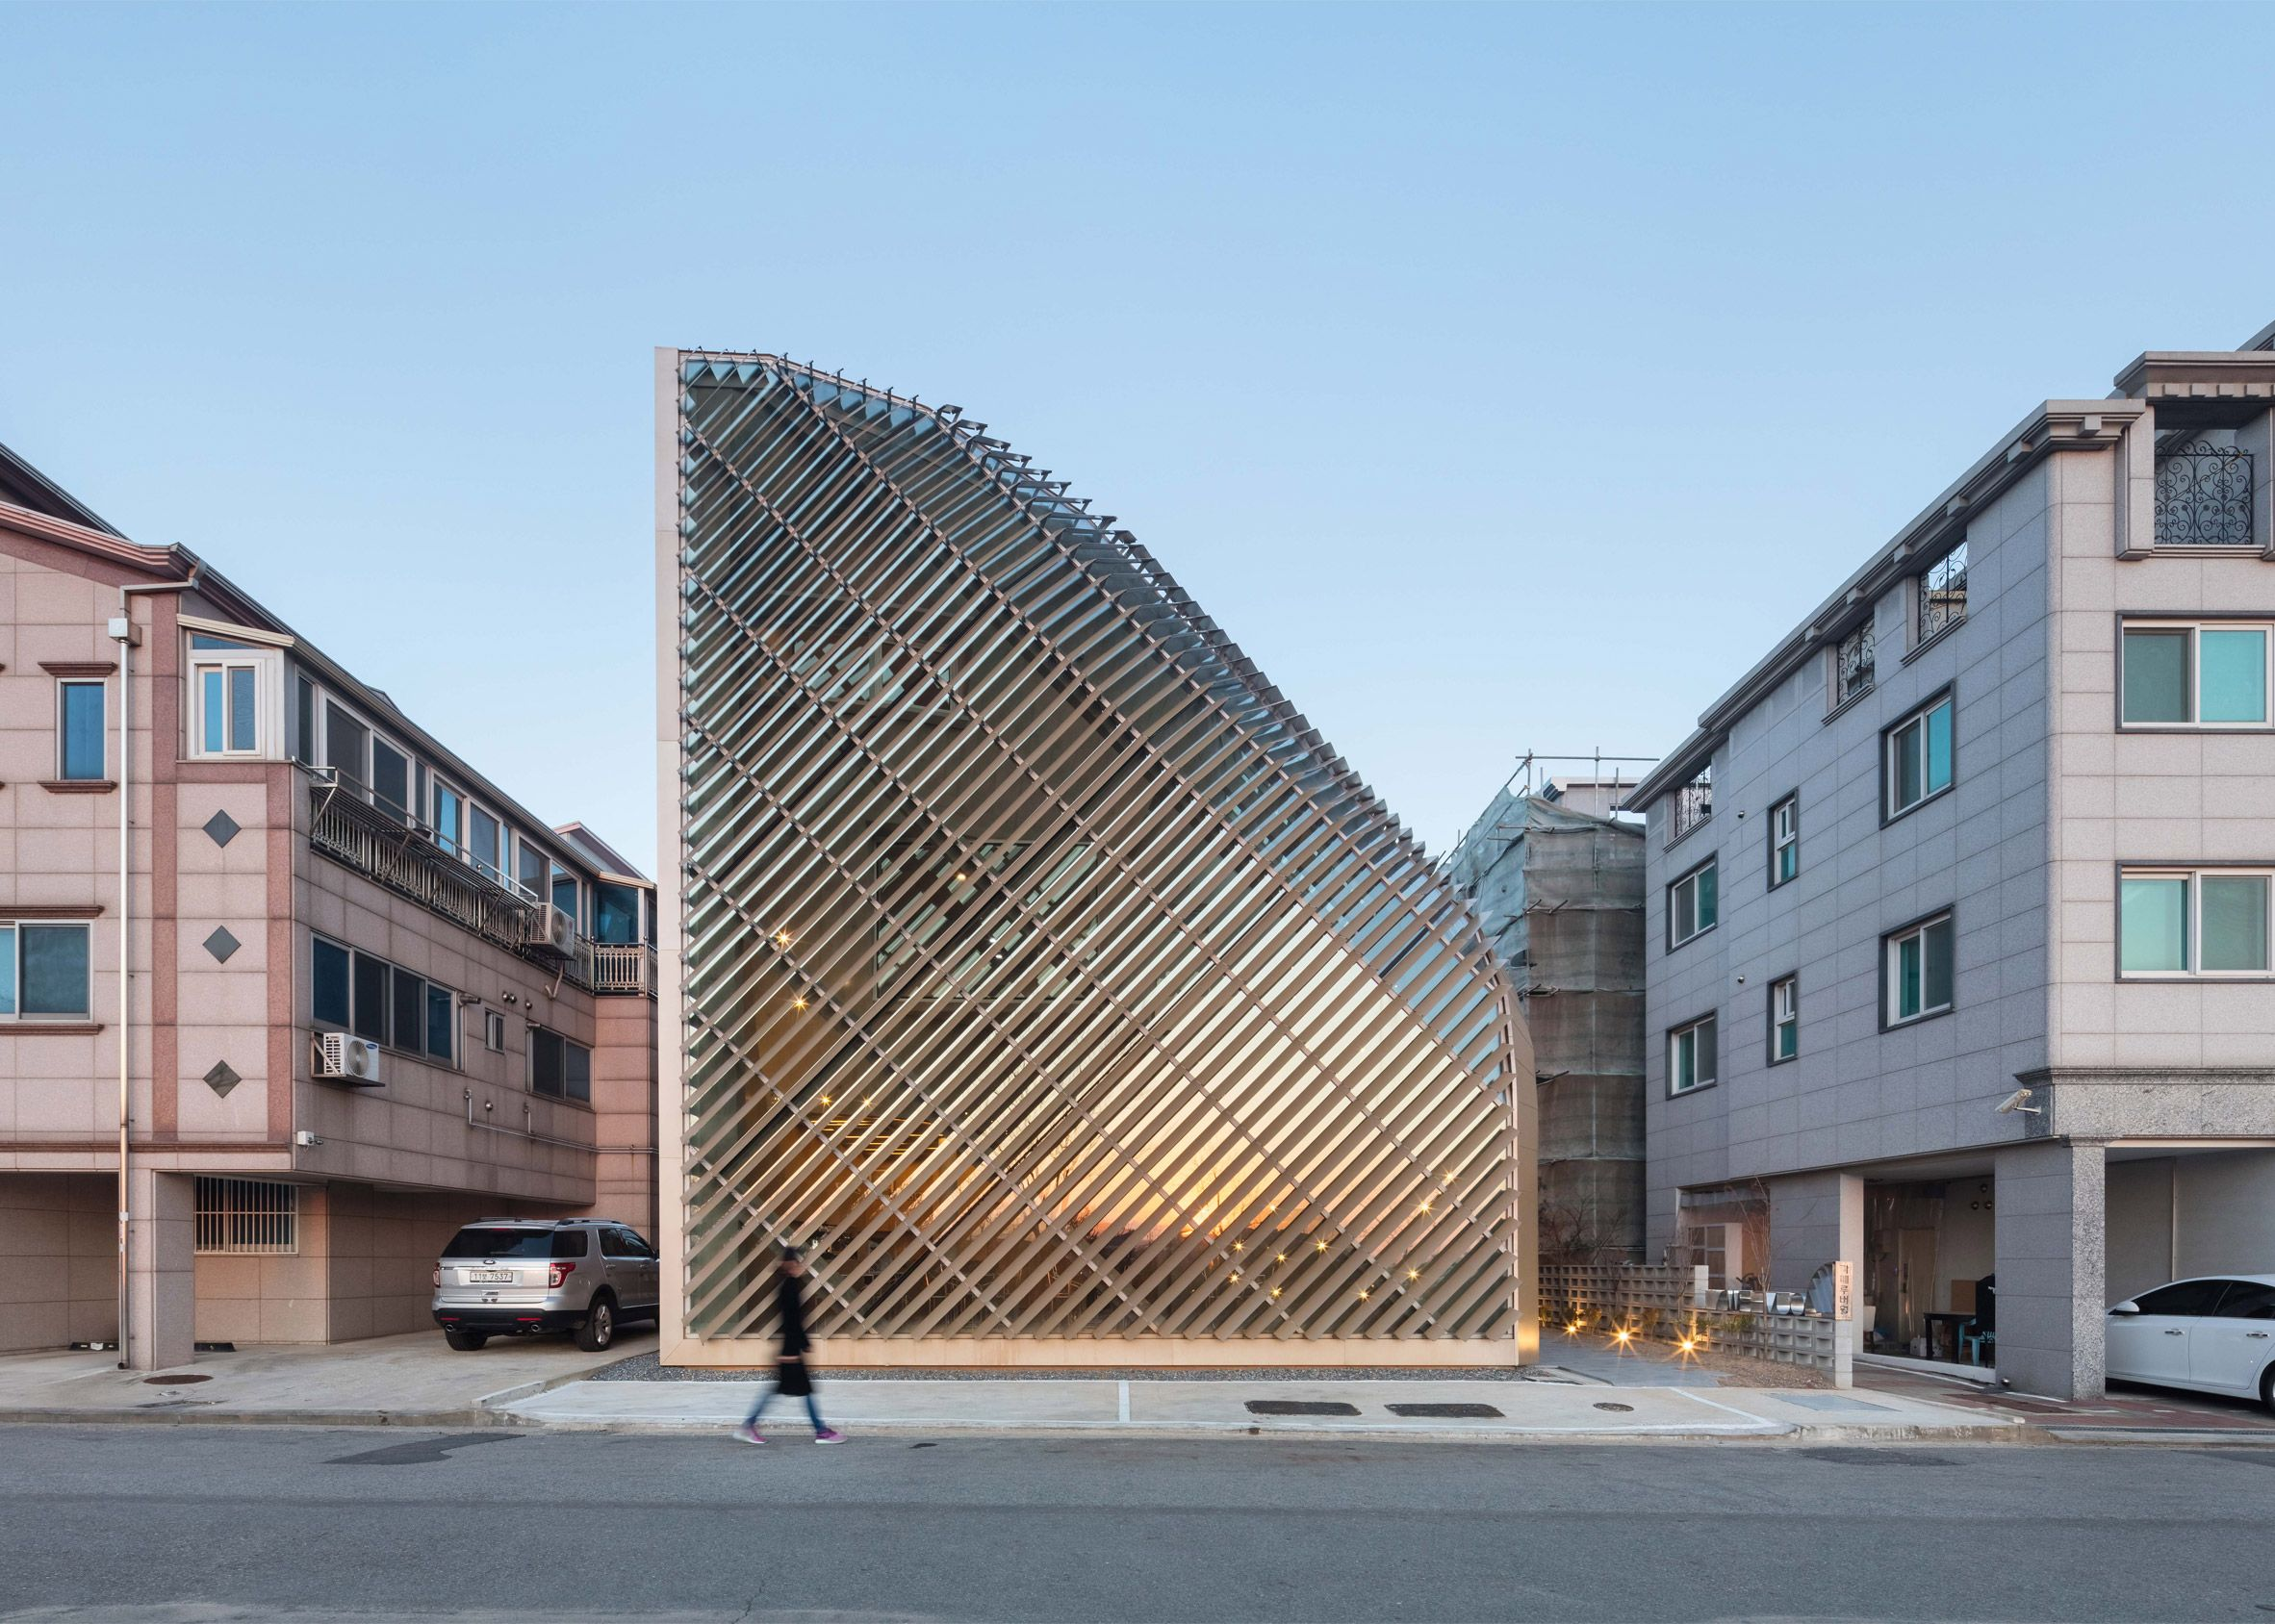 Slanted slats of aluminium cover the irregular, curving form of this house and cafe in Gyeonggi Province designed by South Korean architecture practice AND.